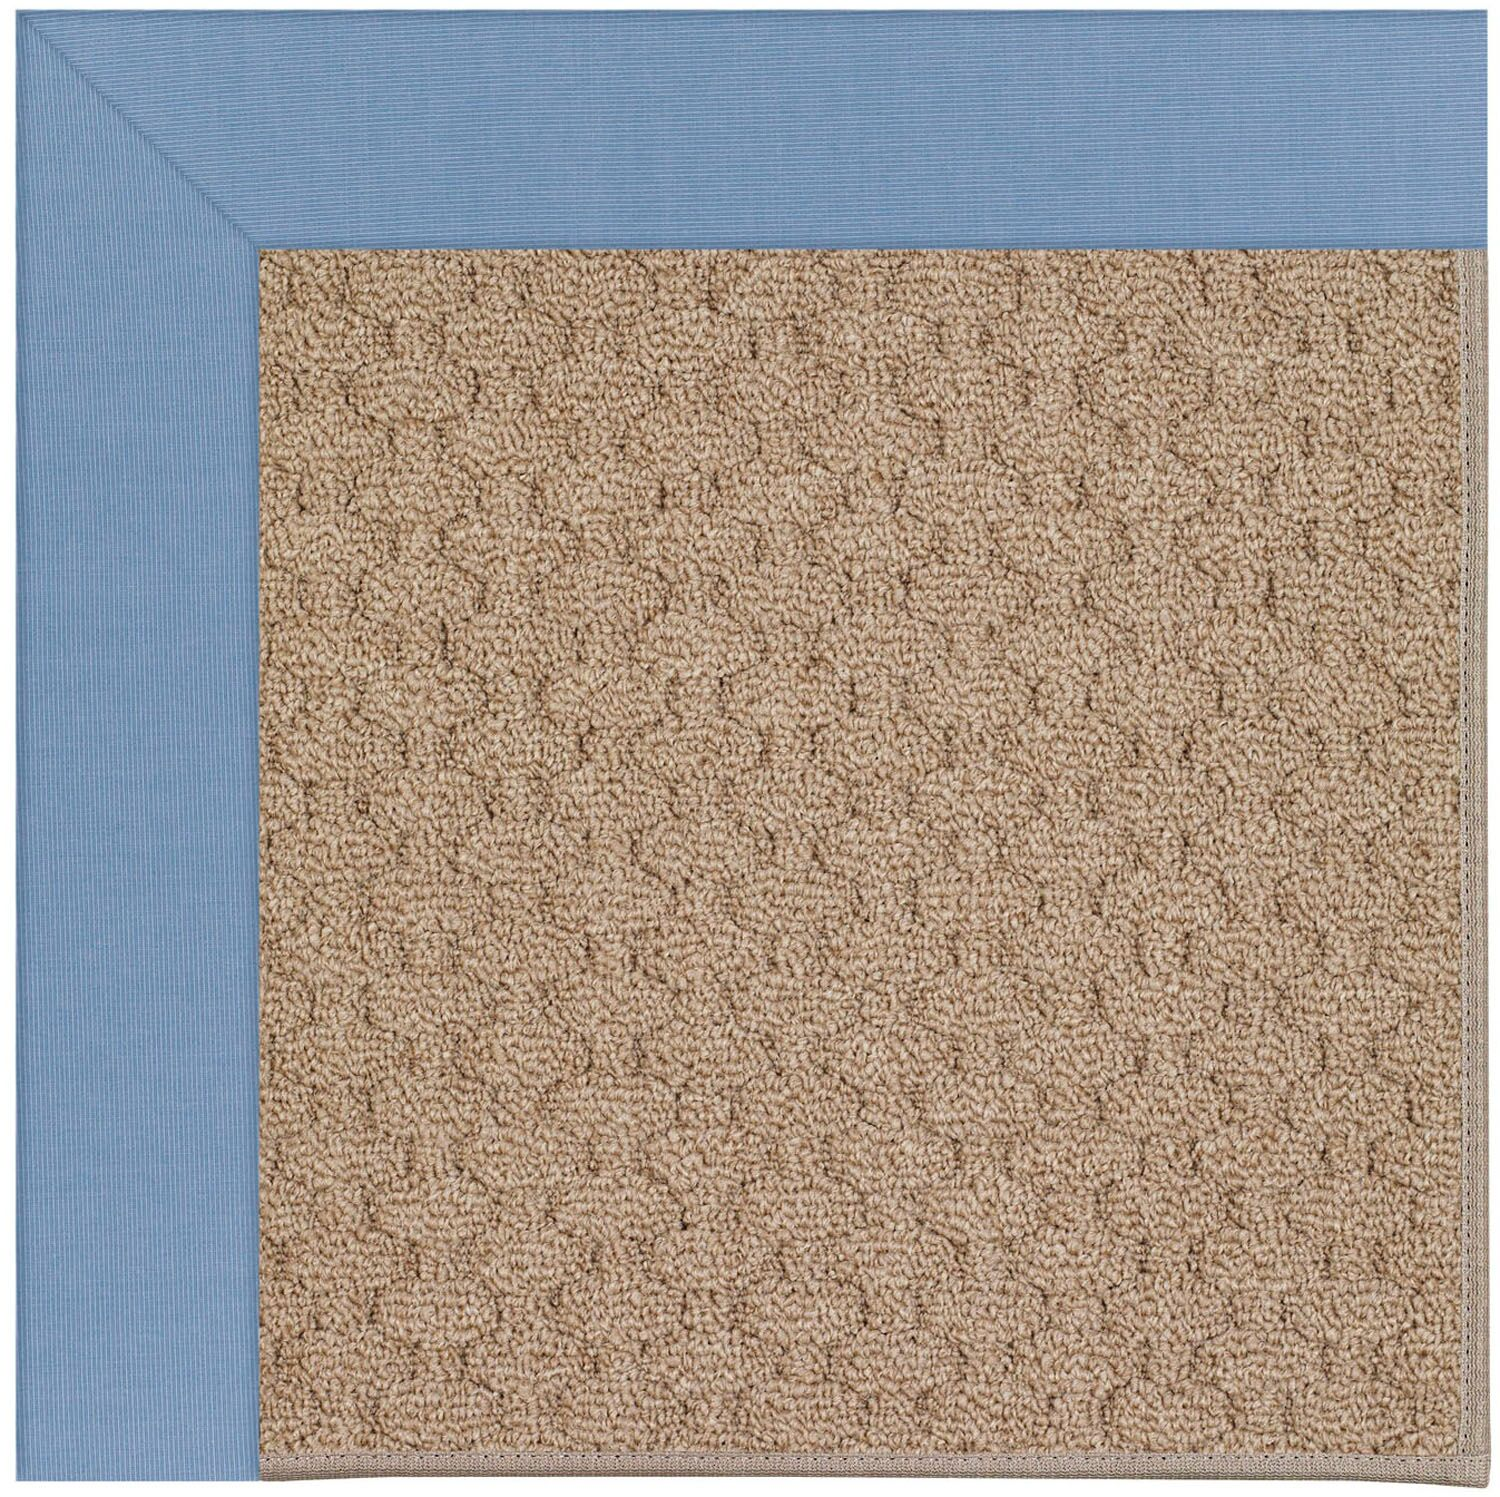 Lisle Machine Tufted Blue/Brown Indoor/Outdoor Area Rug Rug Size: Square 8'